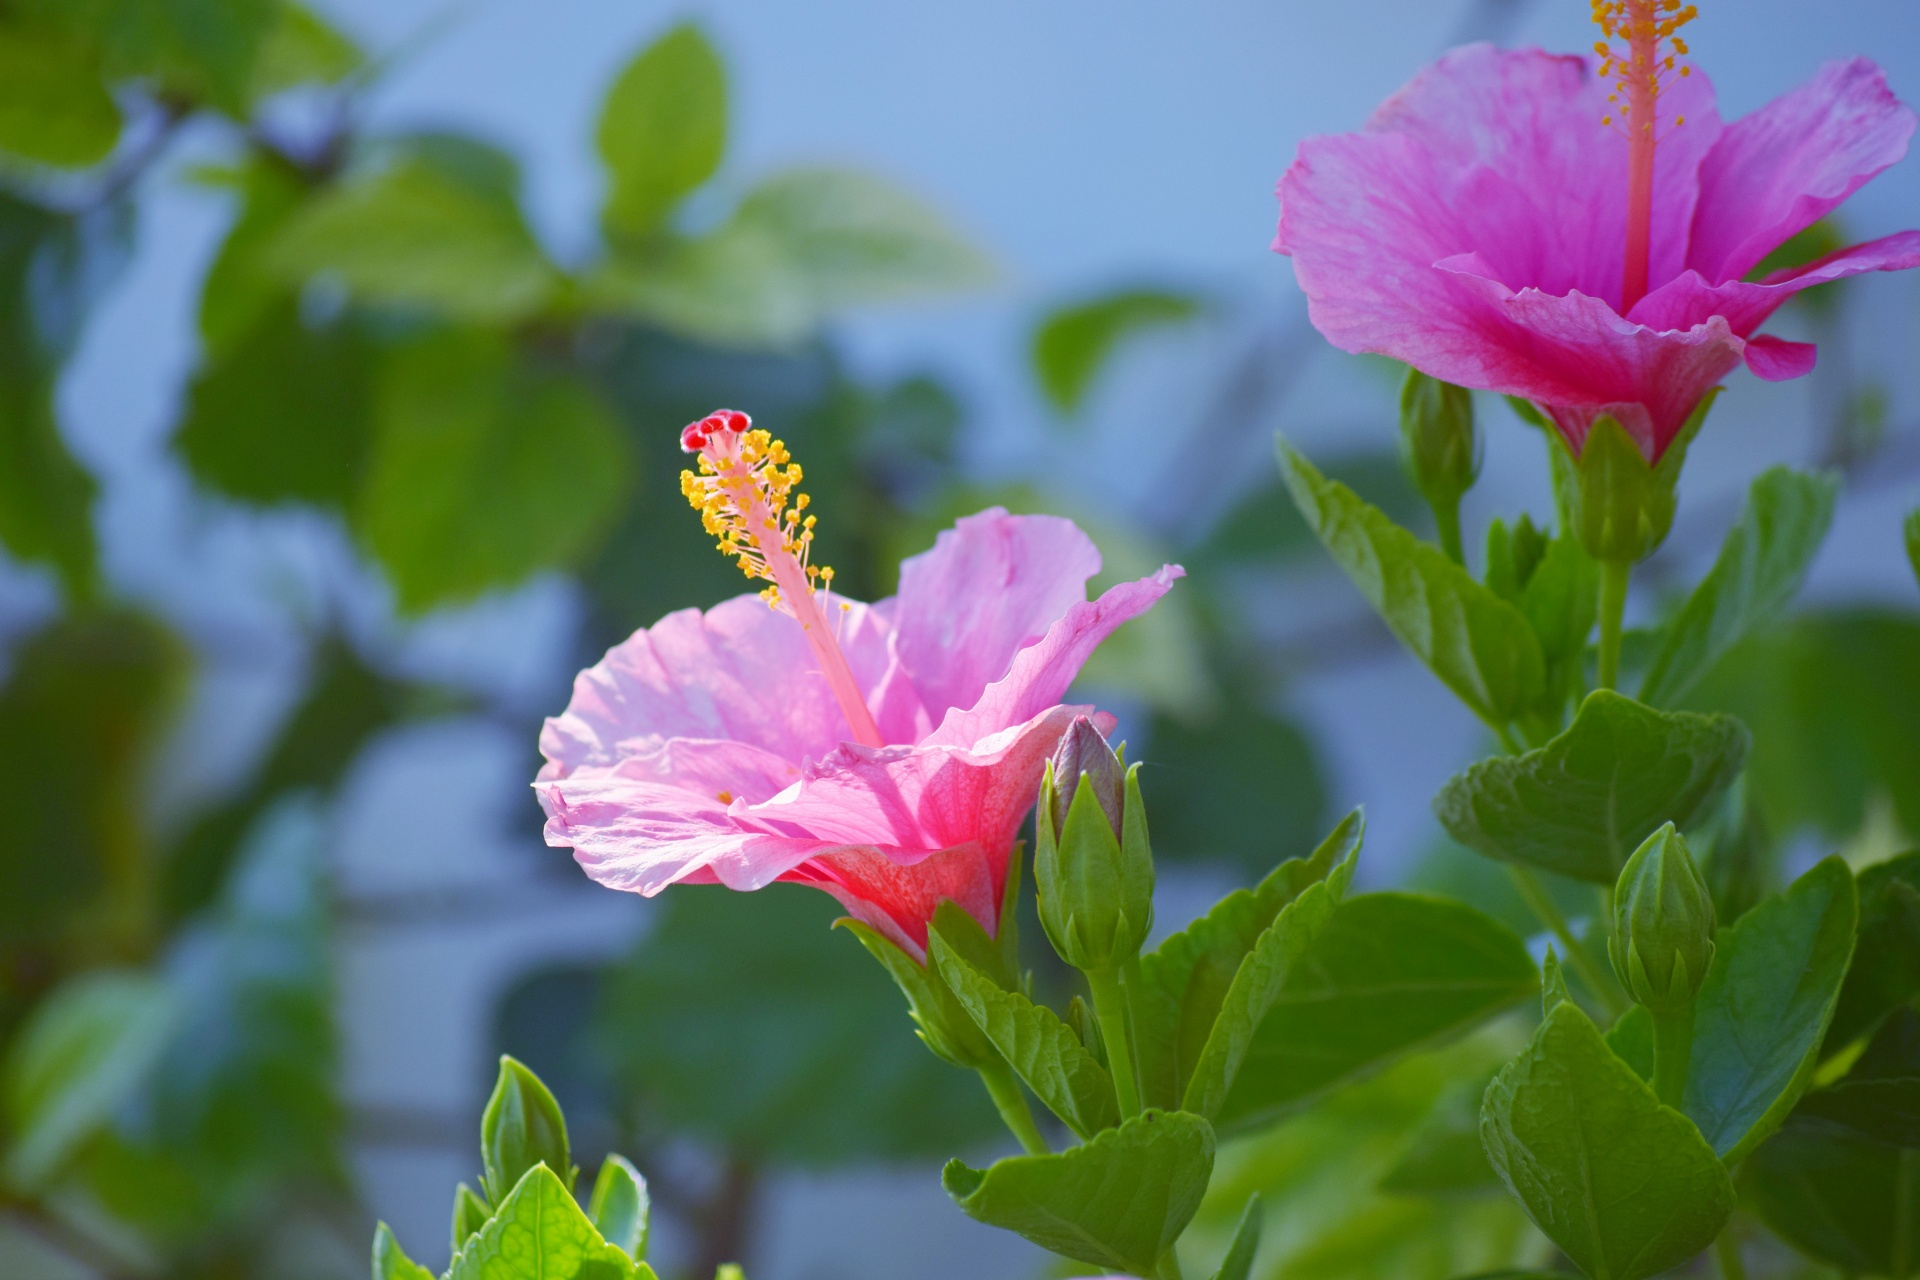 Hibiscusflowersnaturepetalsflower and foliage 40 free photo hibiscus flowers nature izmirmasajfo